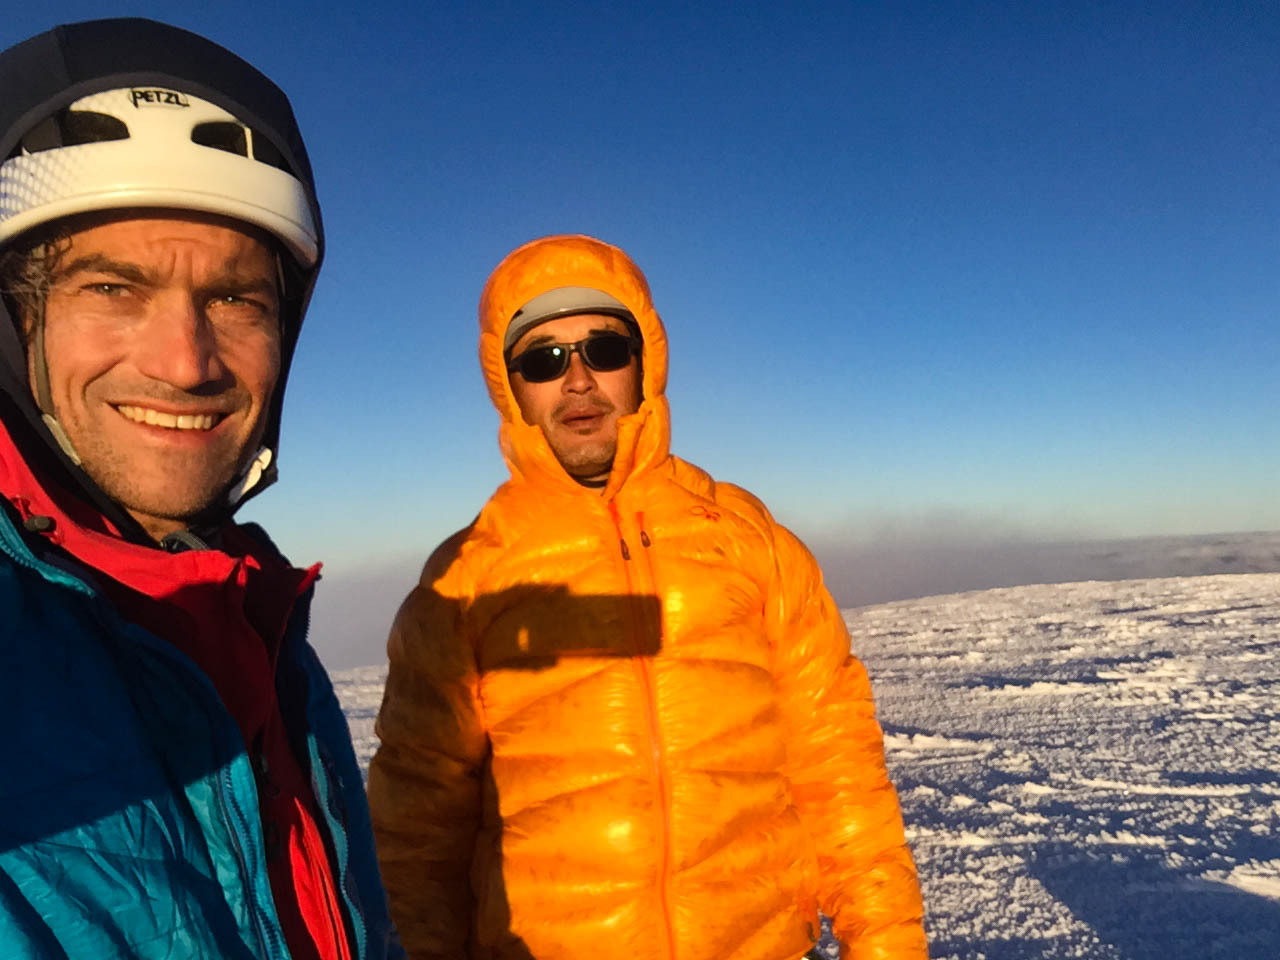 Grant Peak Summit - This is what it looks like to be physically exhausted, cold and whittled down by pain. Mark Allen, left, is faring much better. Photo: Mountain Bureau, LLC